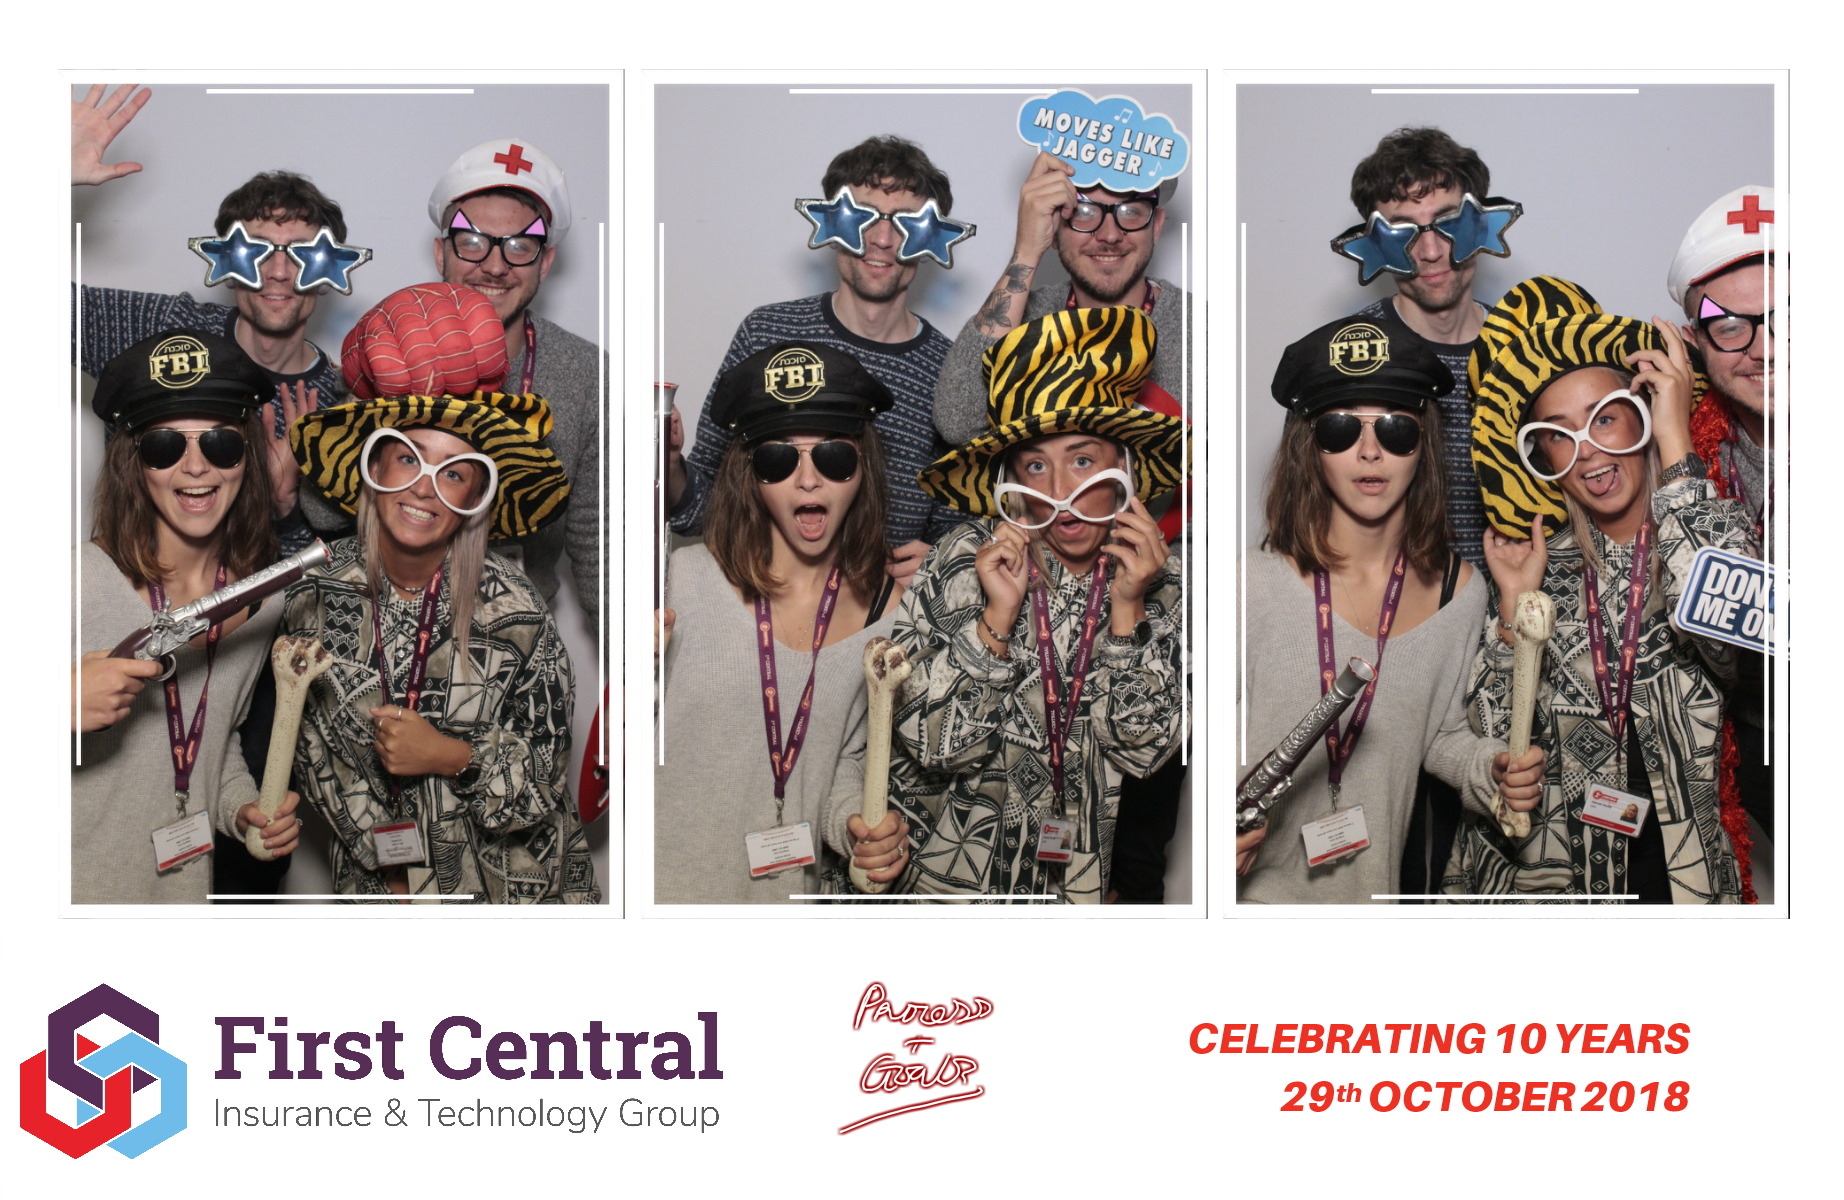 1st Central Insurance | View more photos from the event at gallery.myphotoboothexperience.co.uk/u/MyPhotoBoothExperienceLtd/1st-Central-Insurance